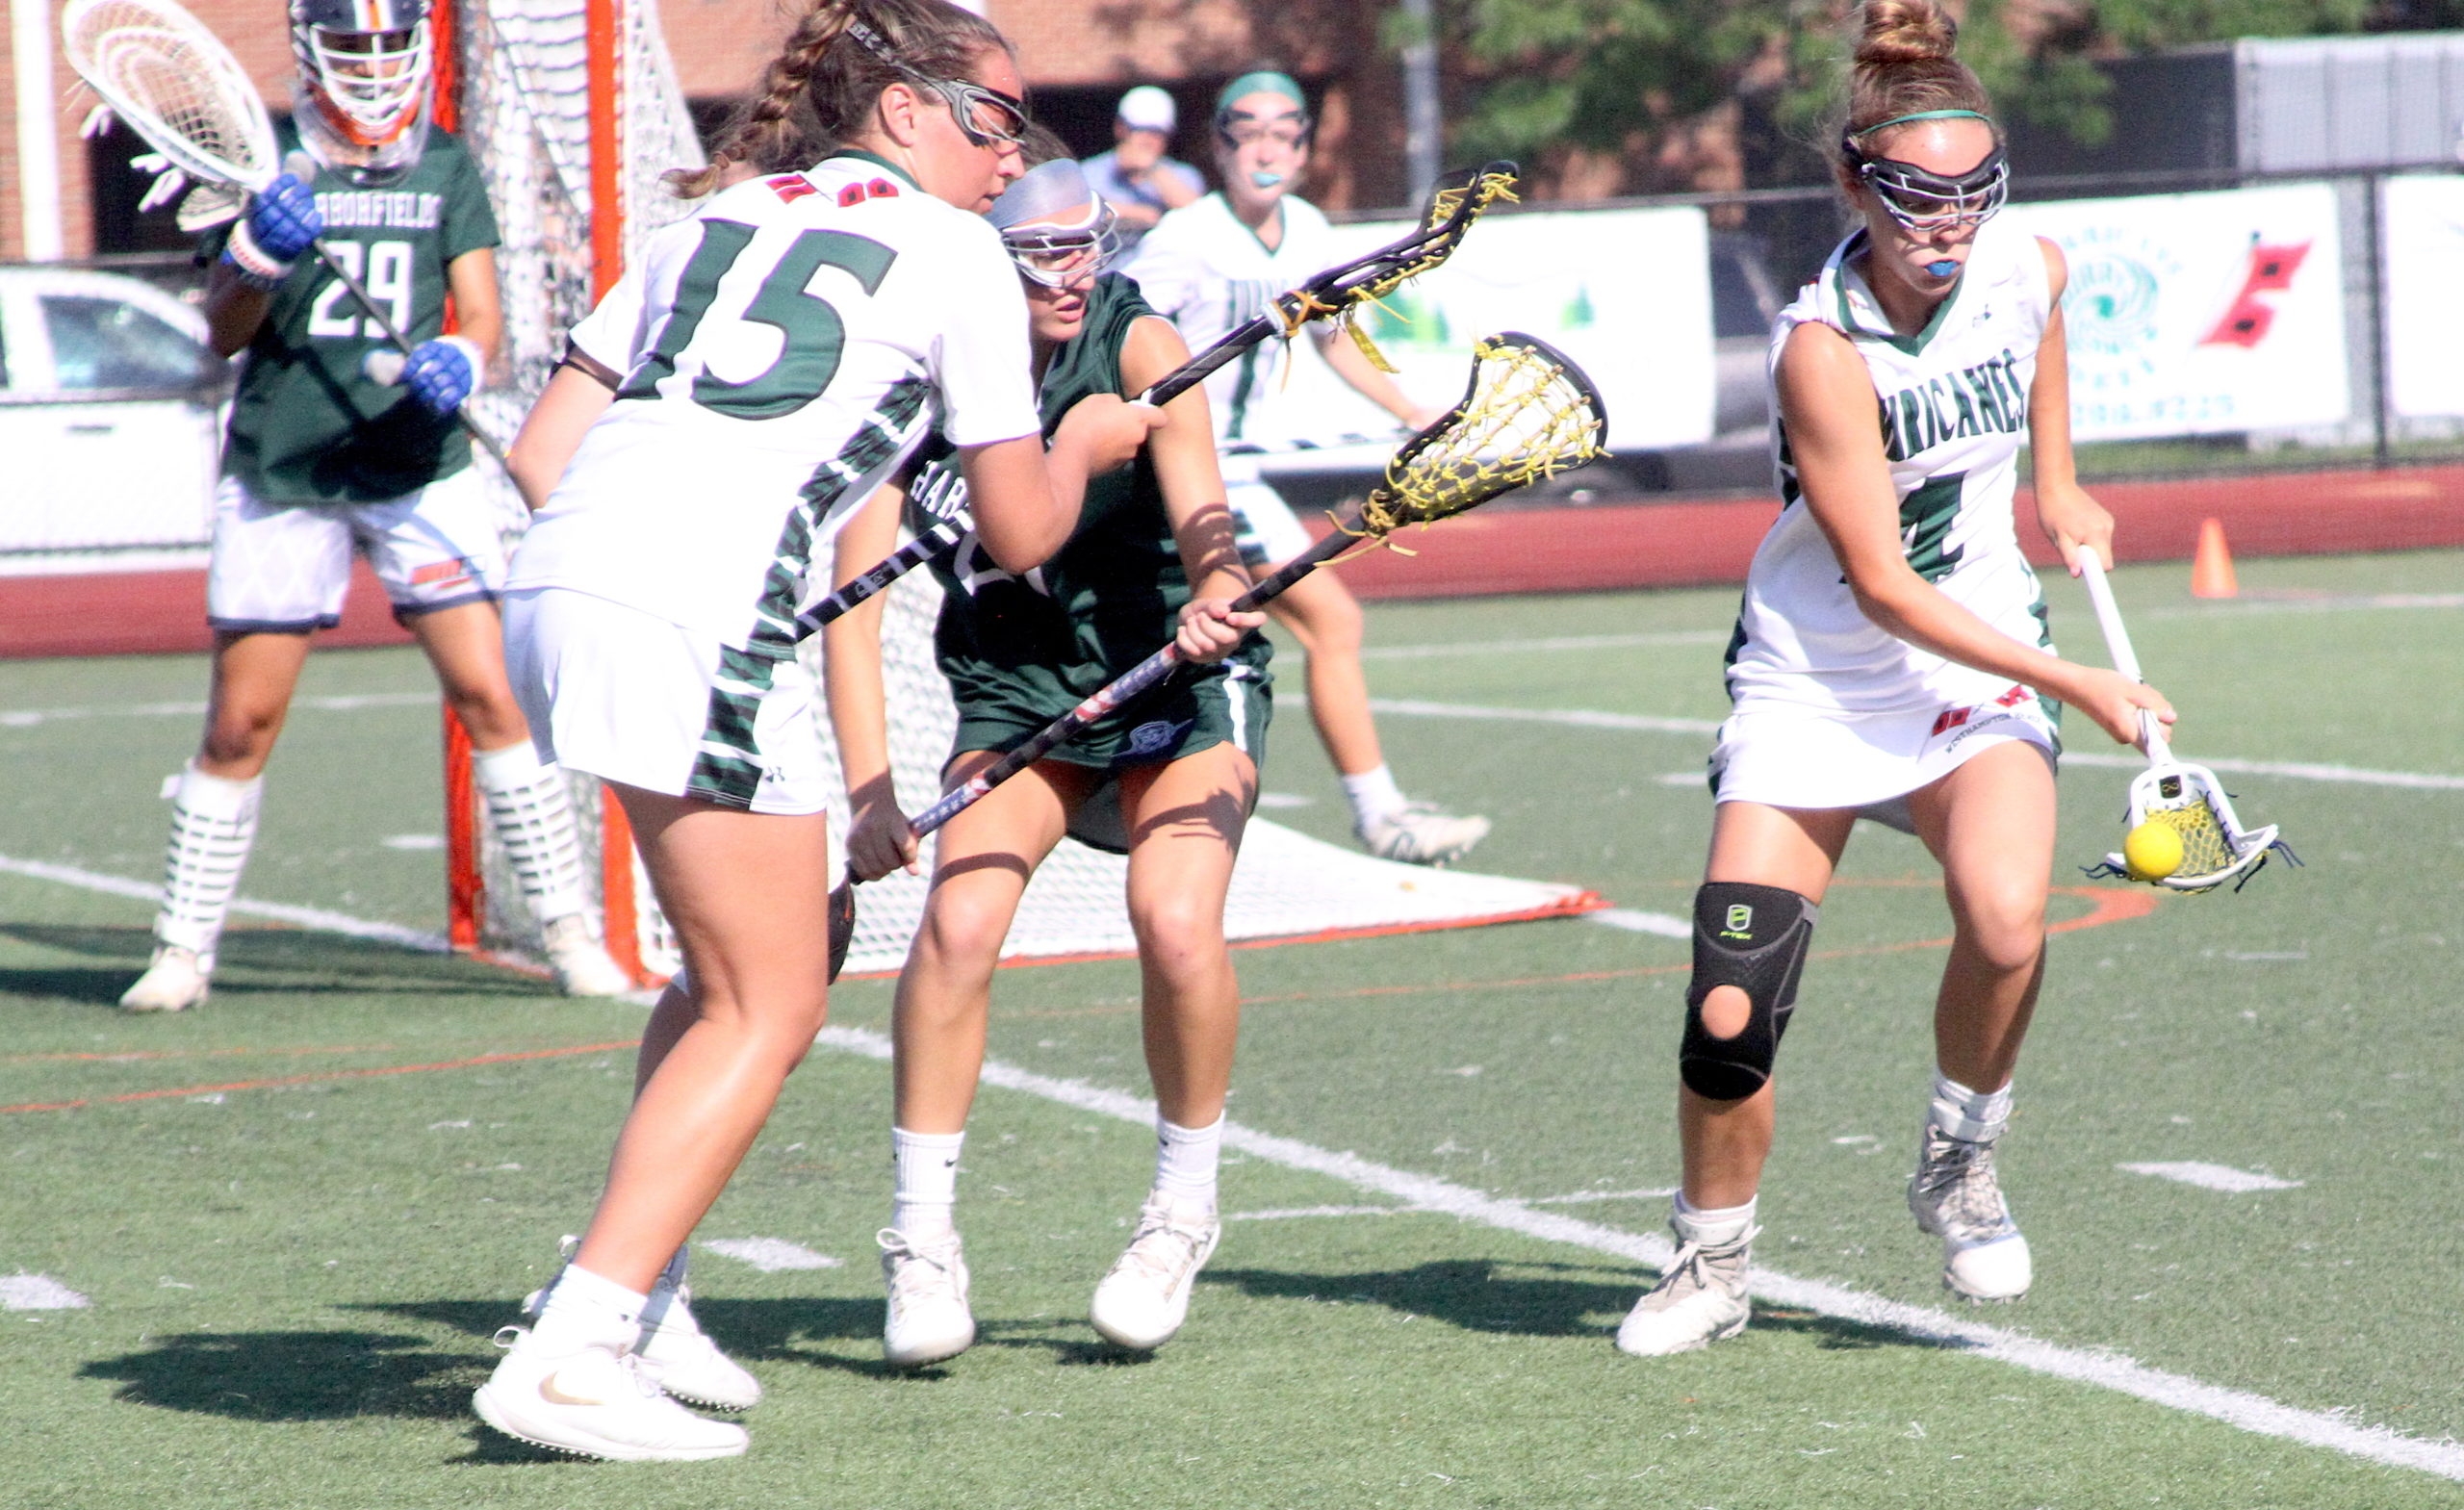 Westhampton Beach seventh-grader Ava Derby scoops up a ground ball to regain possession for the Hurricanes. DESIRÉE KEEGAN